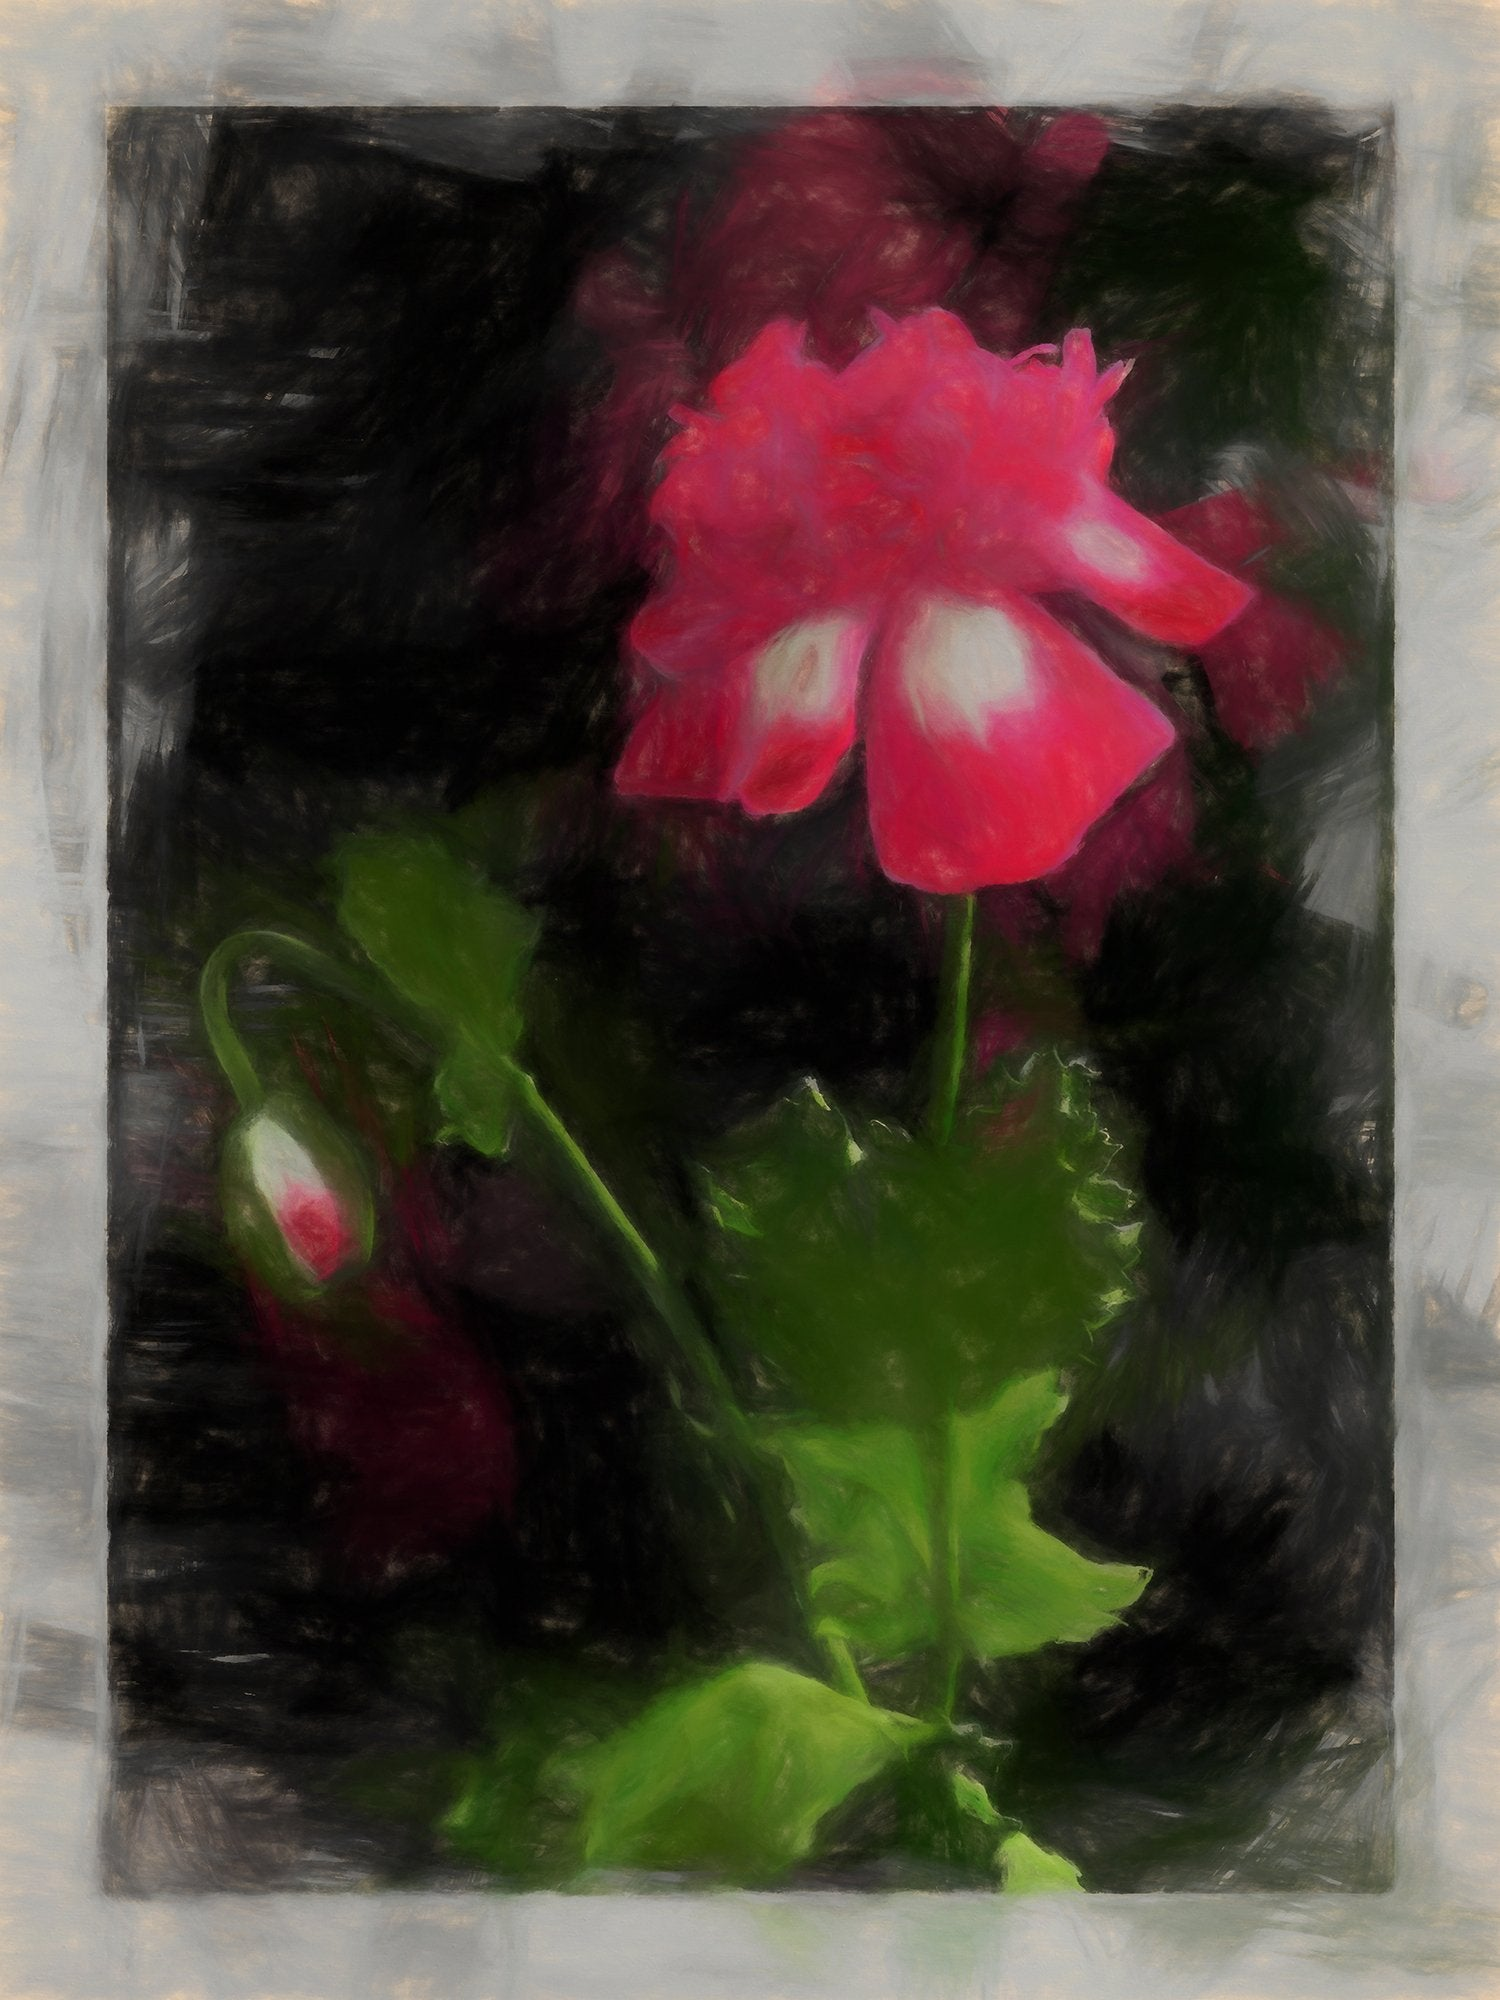 Annual Poppy, Reworked, Series 2